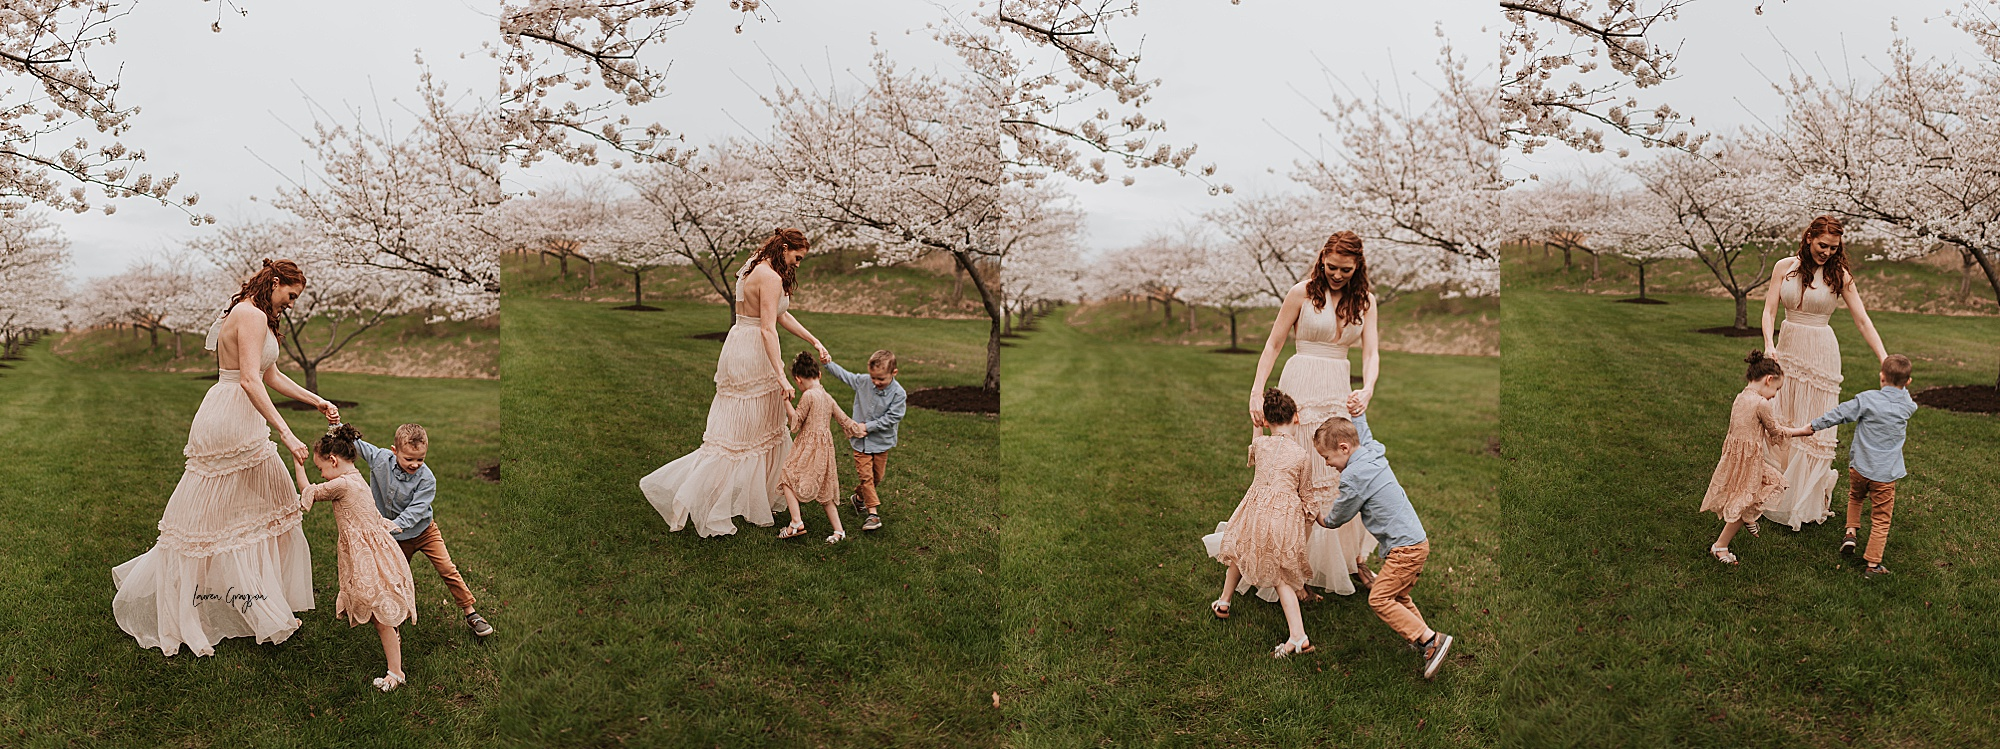 lauren-grayson-photography-cleveland-ohio-motherhood-family-child-photo-session-cherry-blossoms_0017.jpg